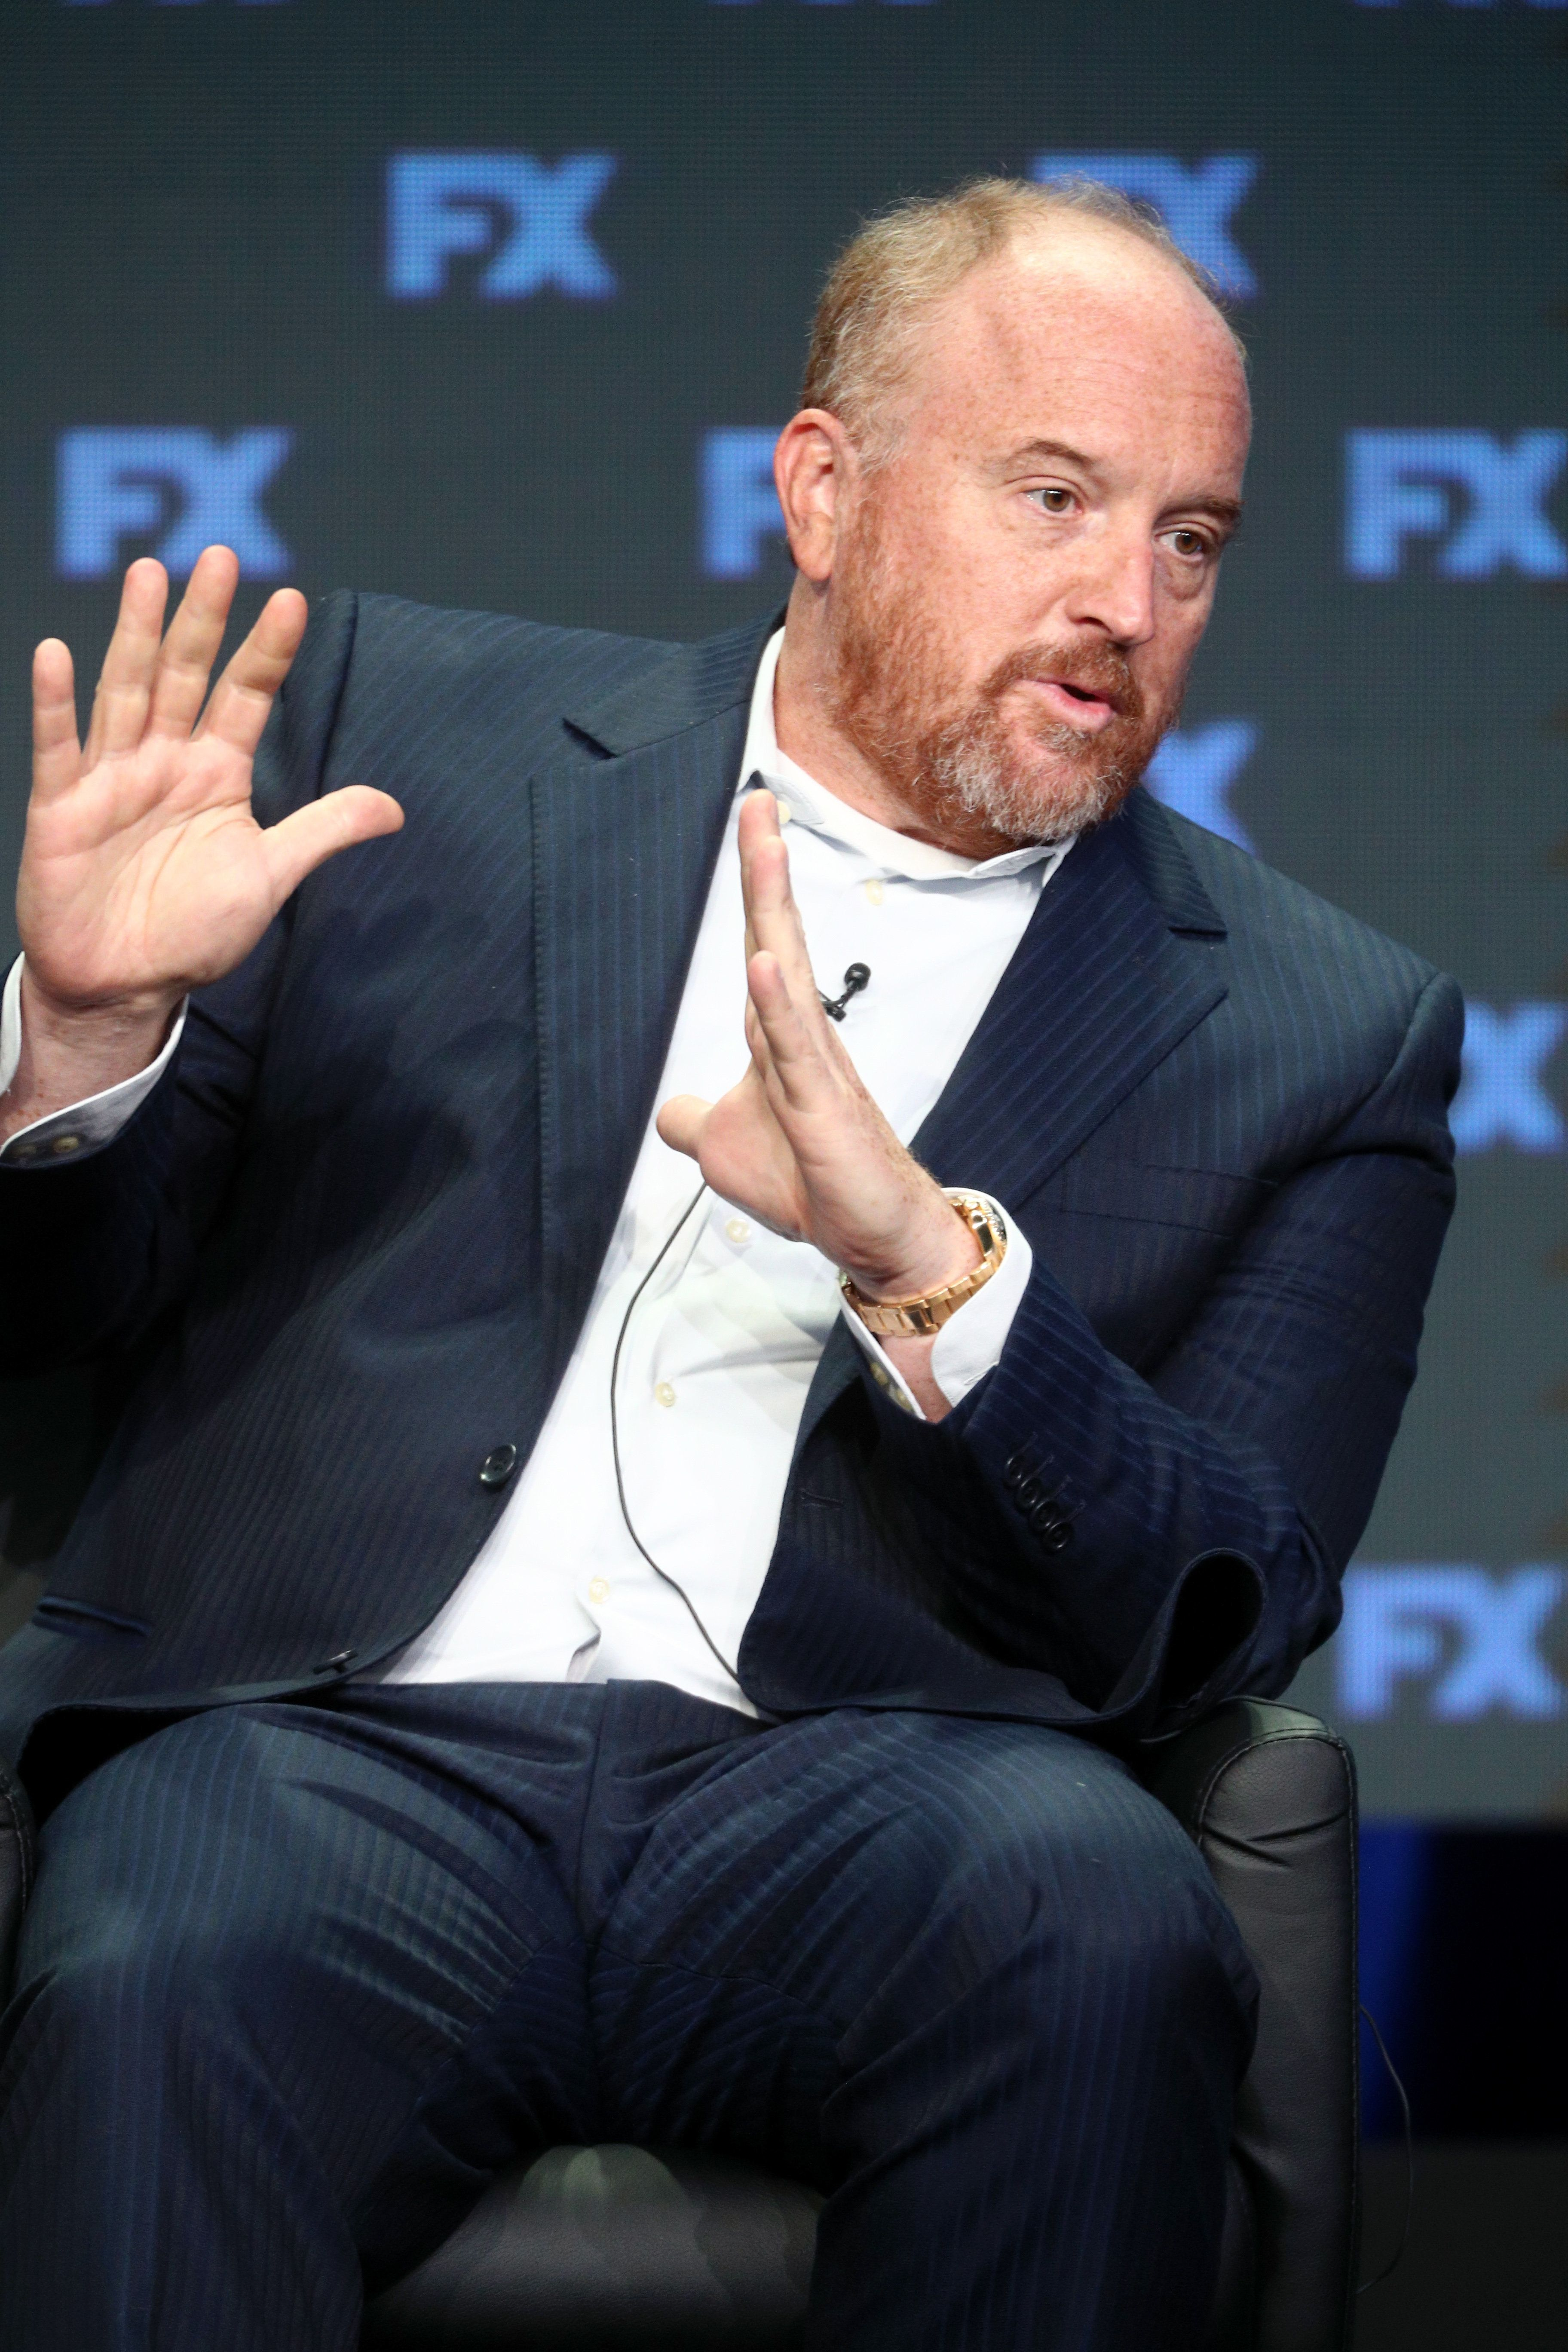 BEVERLY HILLS, CA - AUGUST 09:  Co-creator/Executive Producer/Writer Louis C.K. of 'Better Things' speaks onstage during the FX portion of the 2017 Summer Television Critics Association Press Tour at The Beverly Hilton Hotel on August 9, 2017 in Beverly Hills, California.  (Photo by Frederick M. Brown/Getty Images)